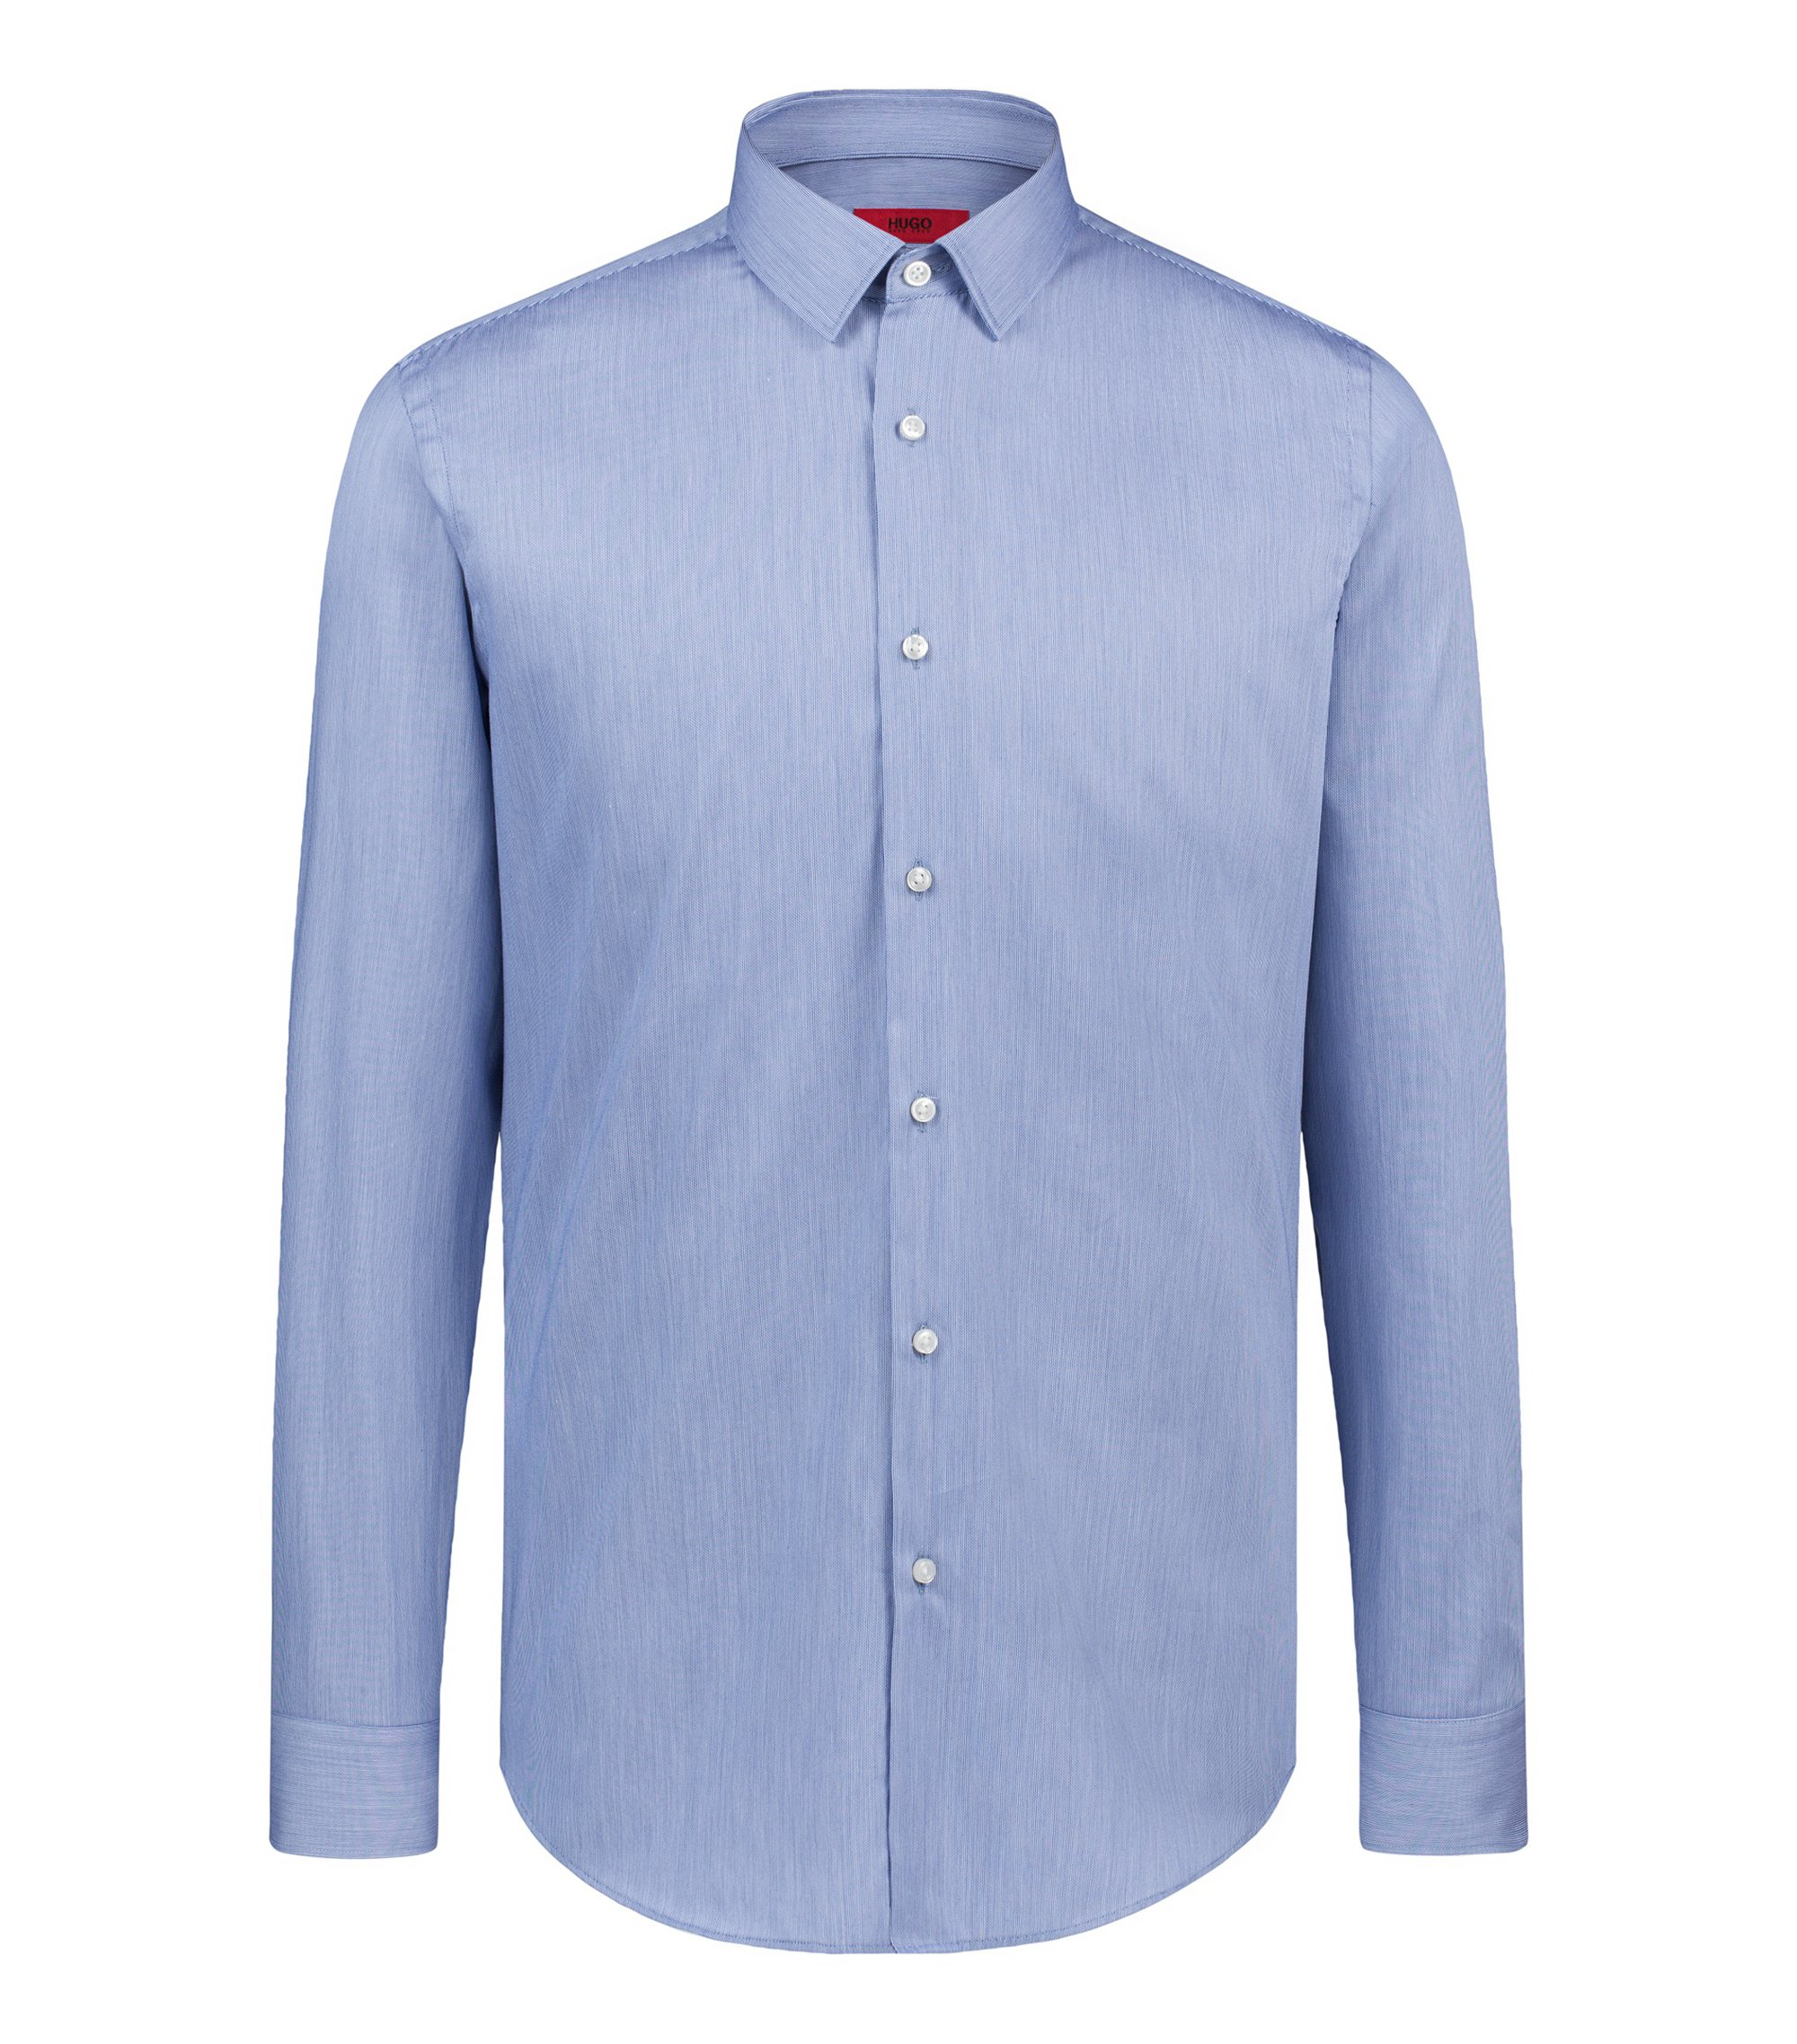 Camicia a righe slim fit in cotone con finitura in satin, Blu